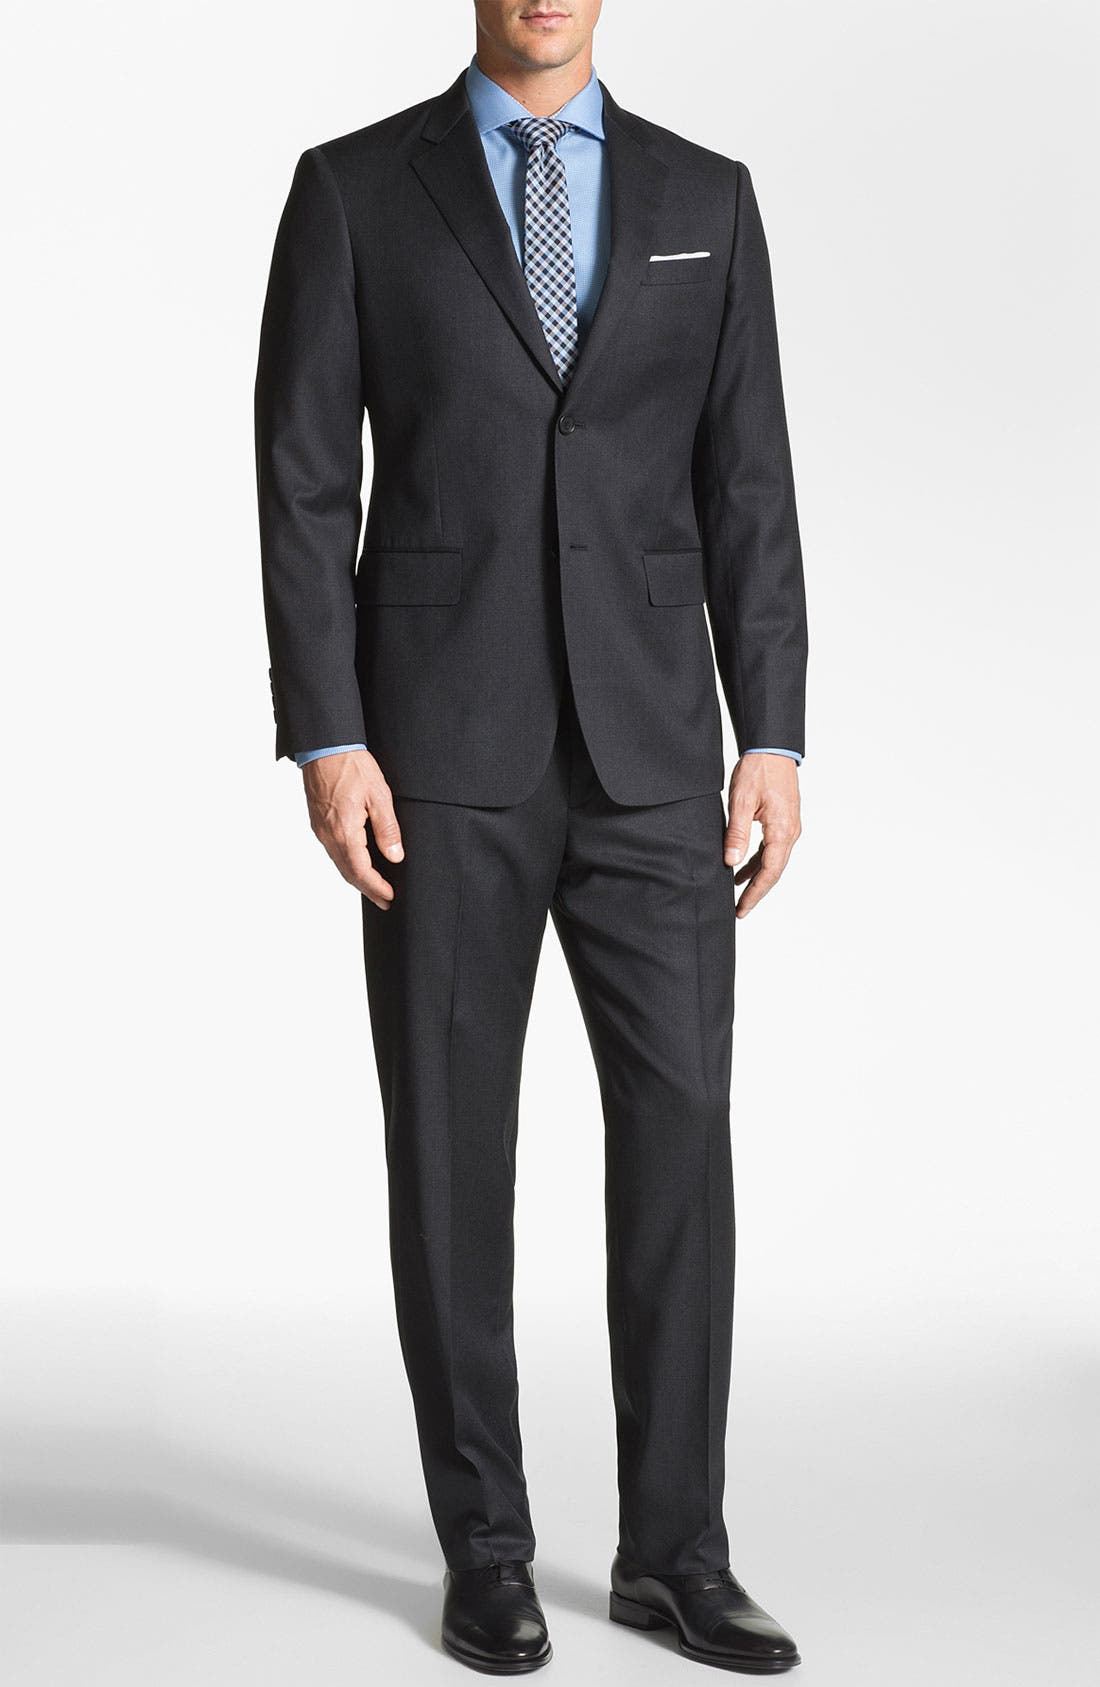 Main Image - John W. Nordstrom 'Travel' Classic Fit Wool Suit